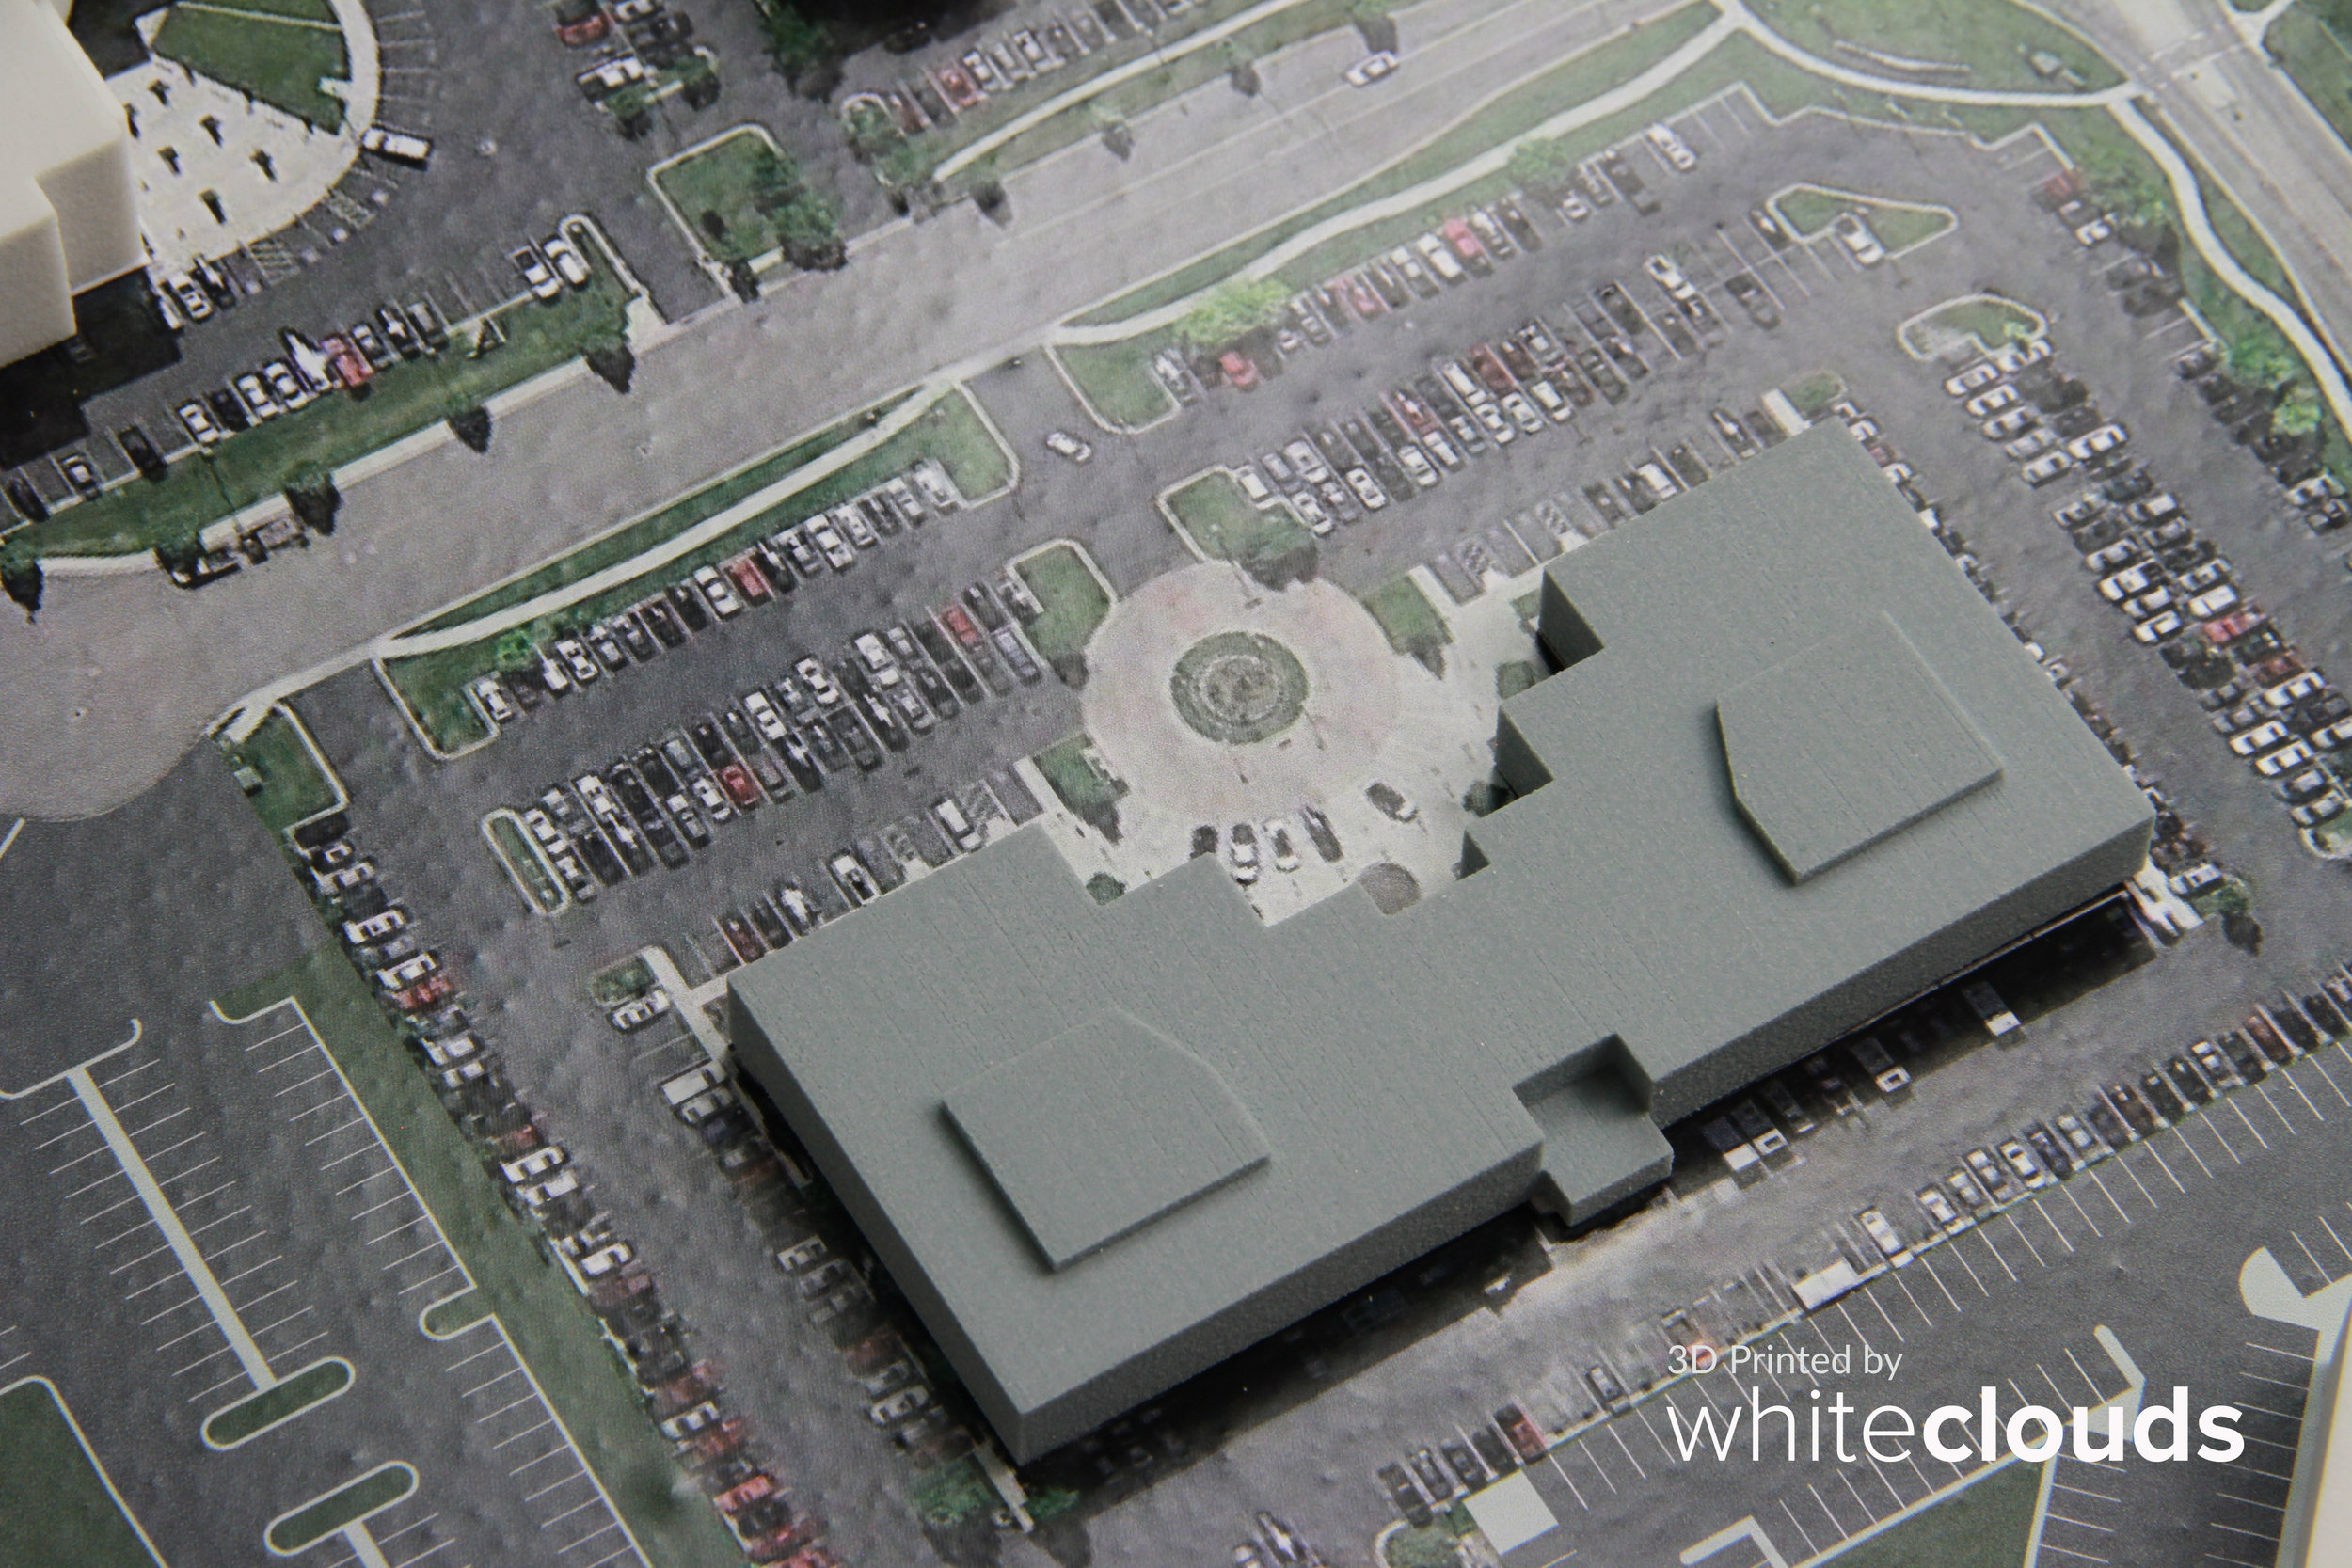 3D-Printed-WhiteClouds-Business-District-Archetectural-Canopy-(Topography)-4.JPG